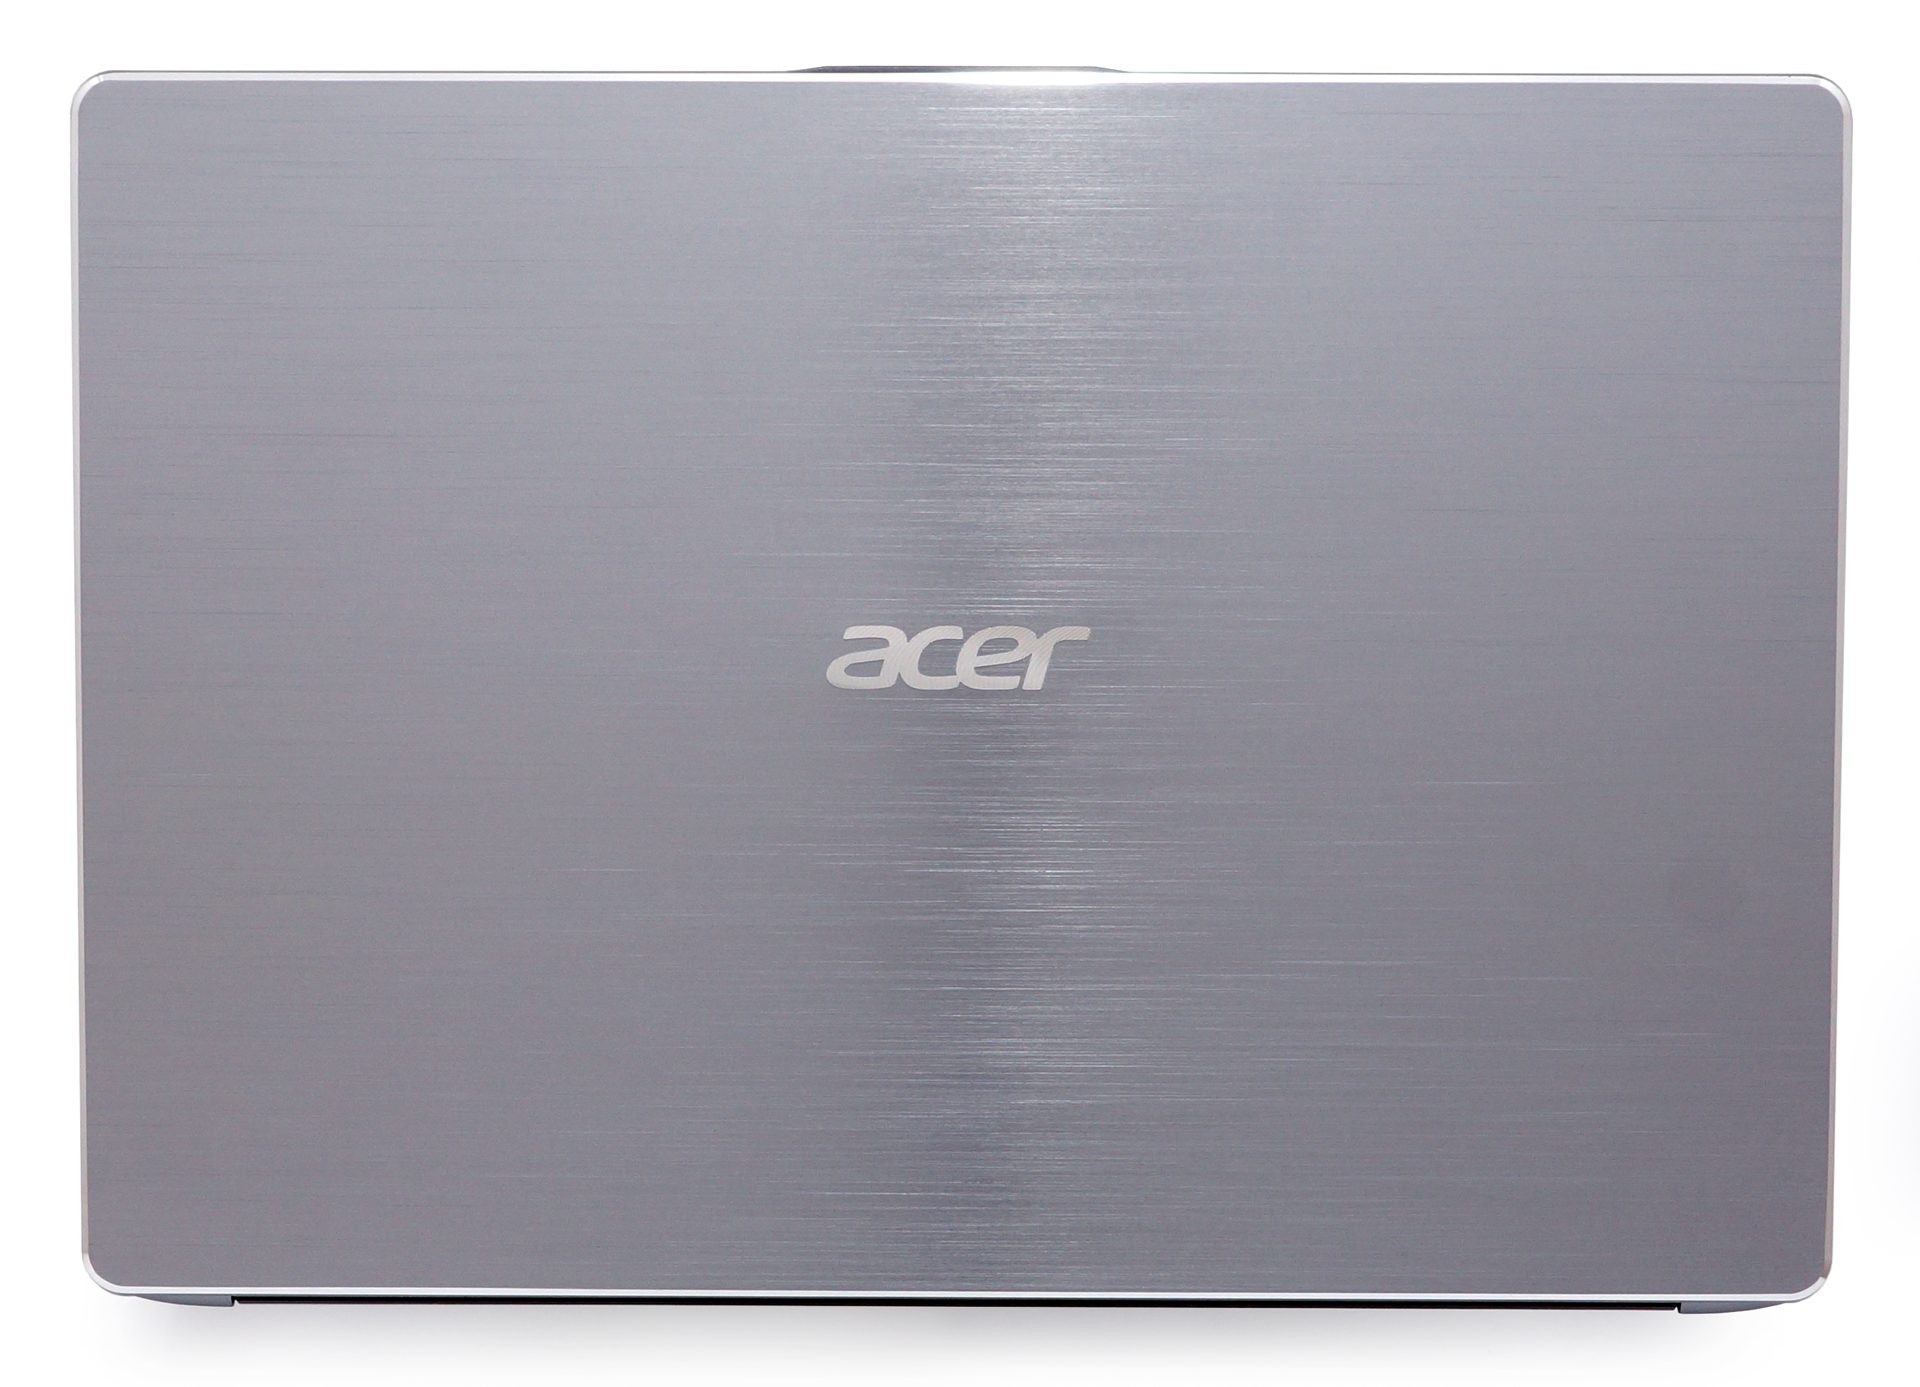 Acer Aspire 56s Driver for Windows 8